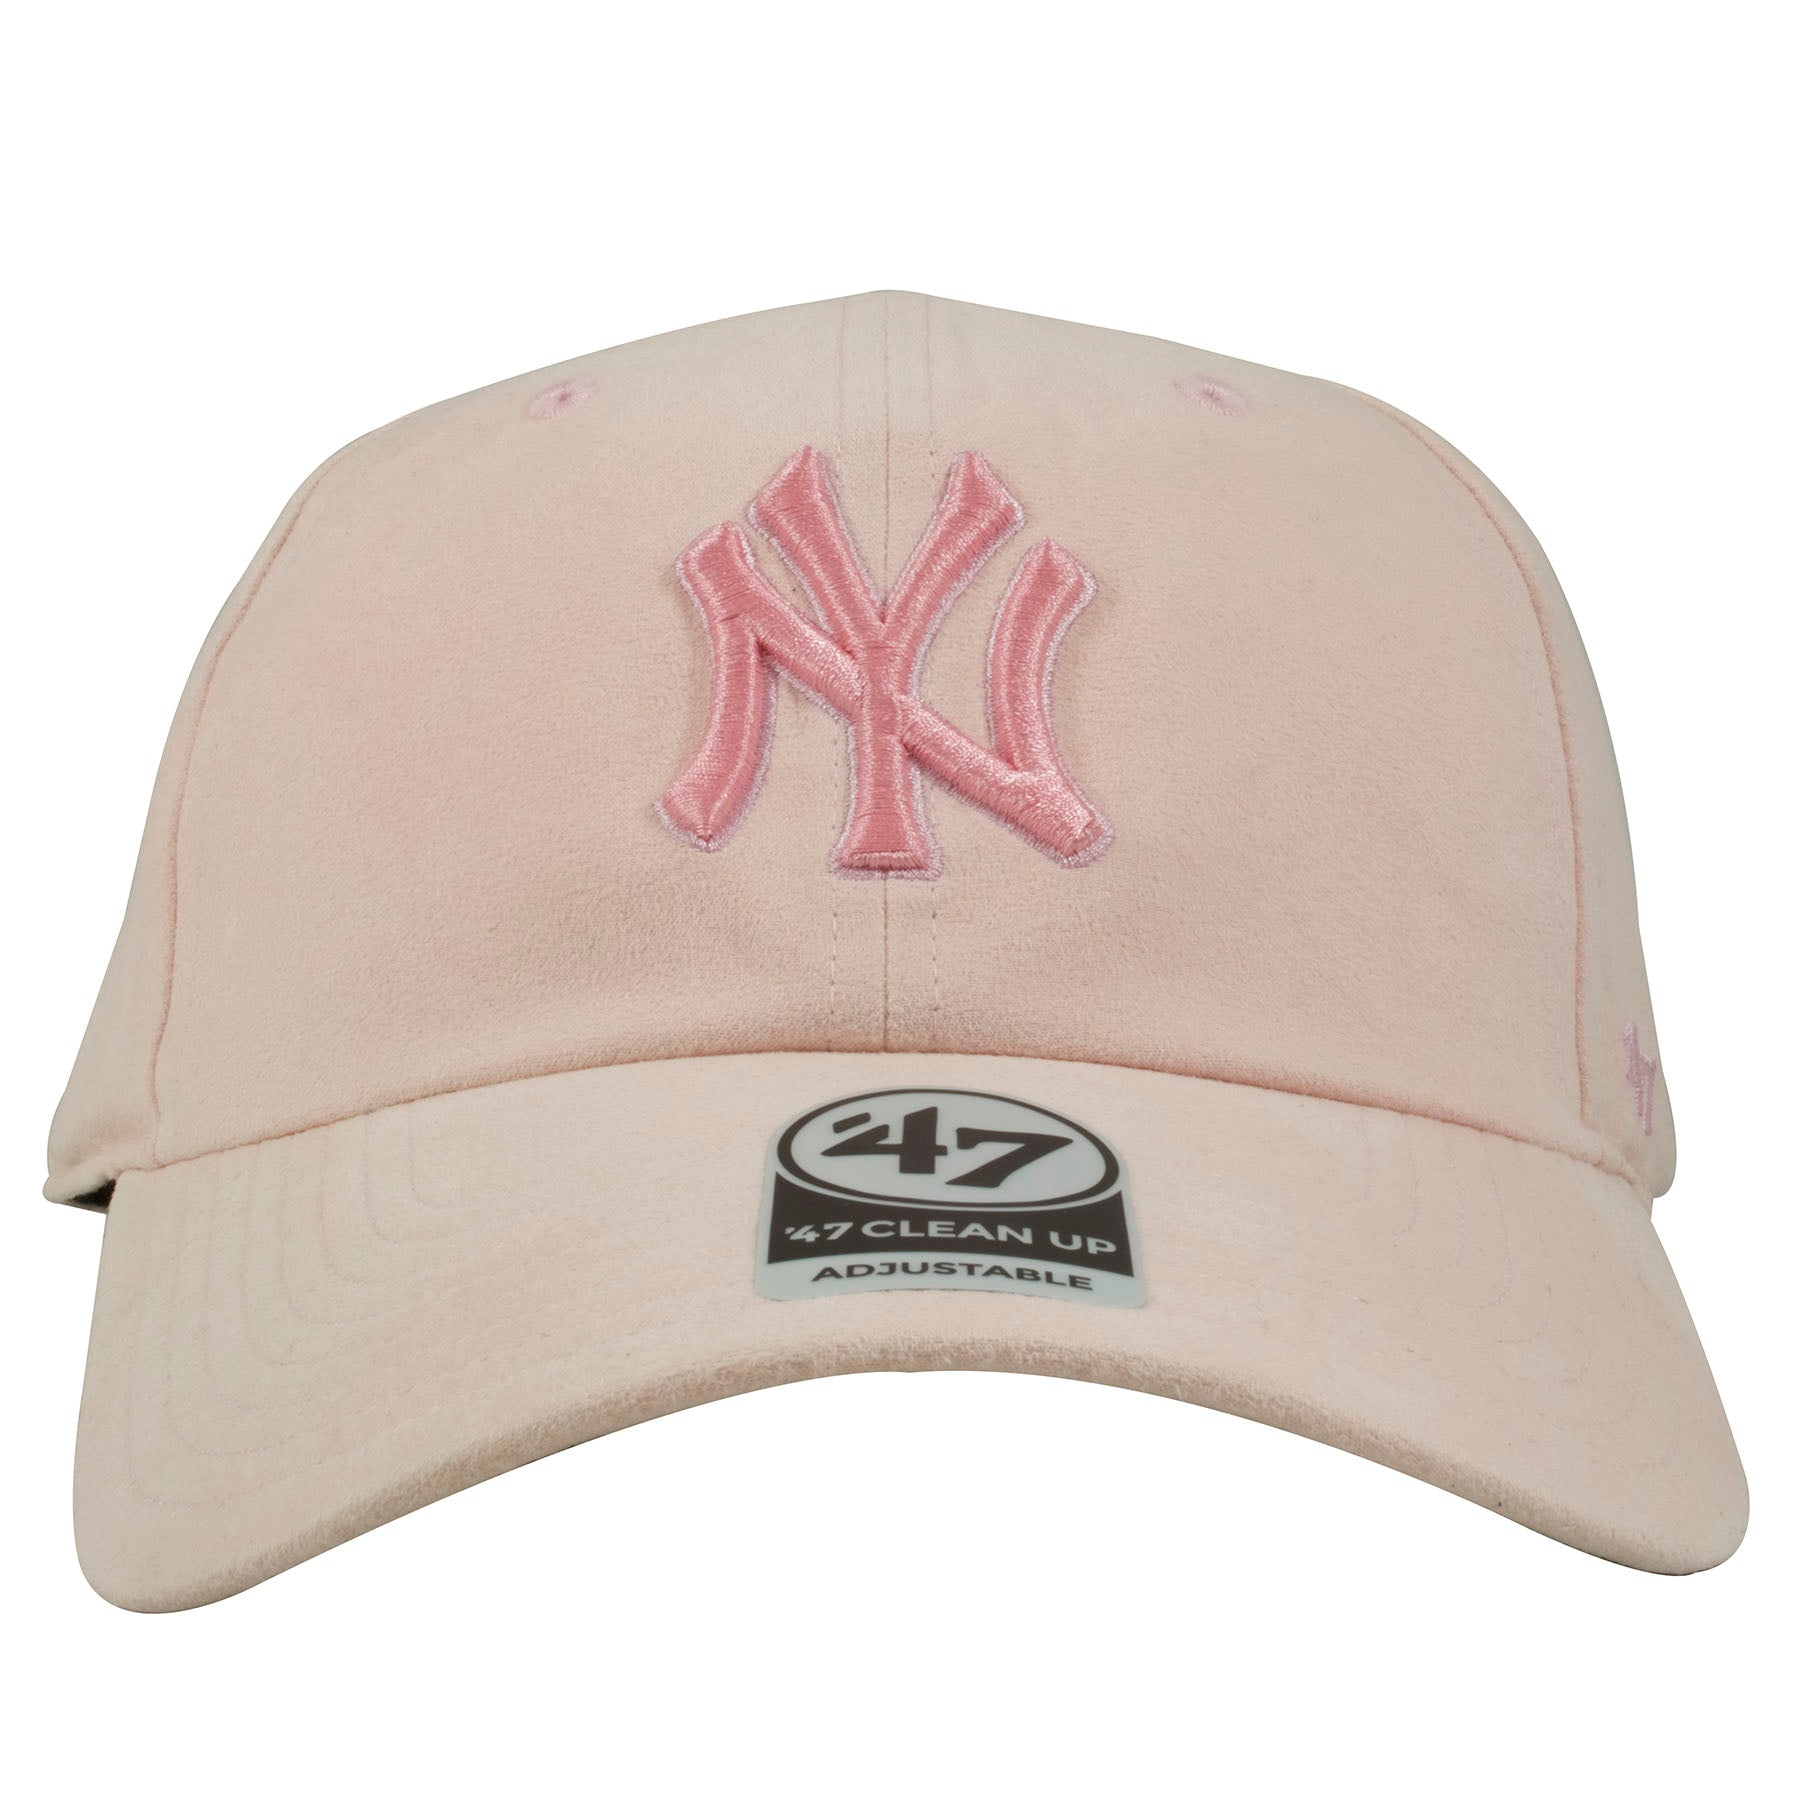 5dfe2a30030 Embroidered on the front of the ink New York Yankees women s ball cap is a  pink